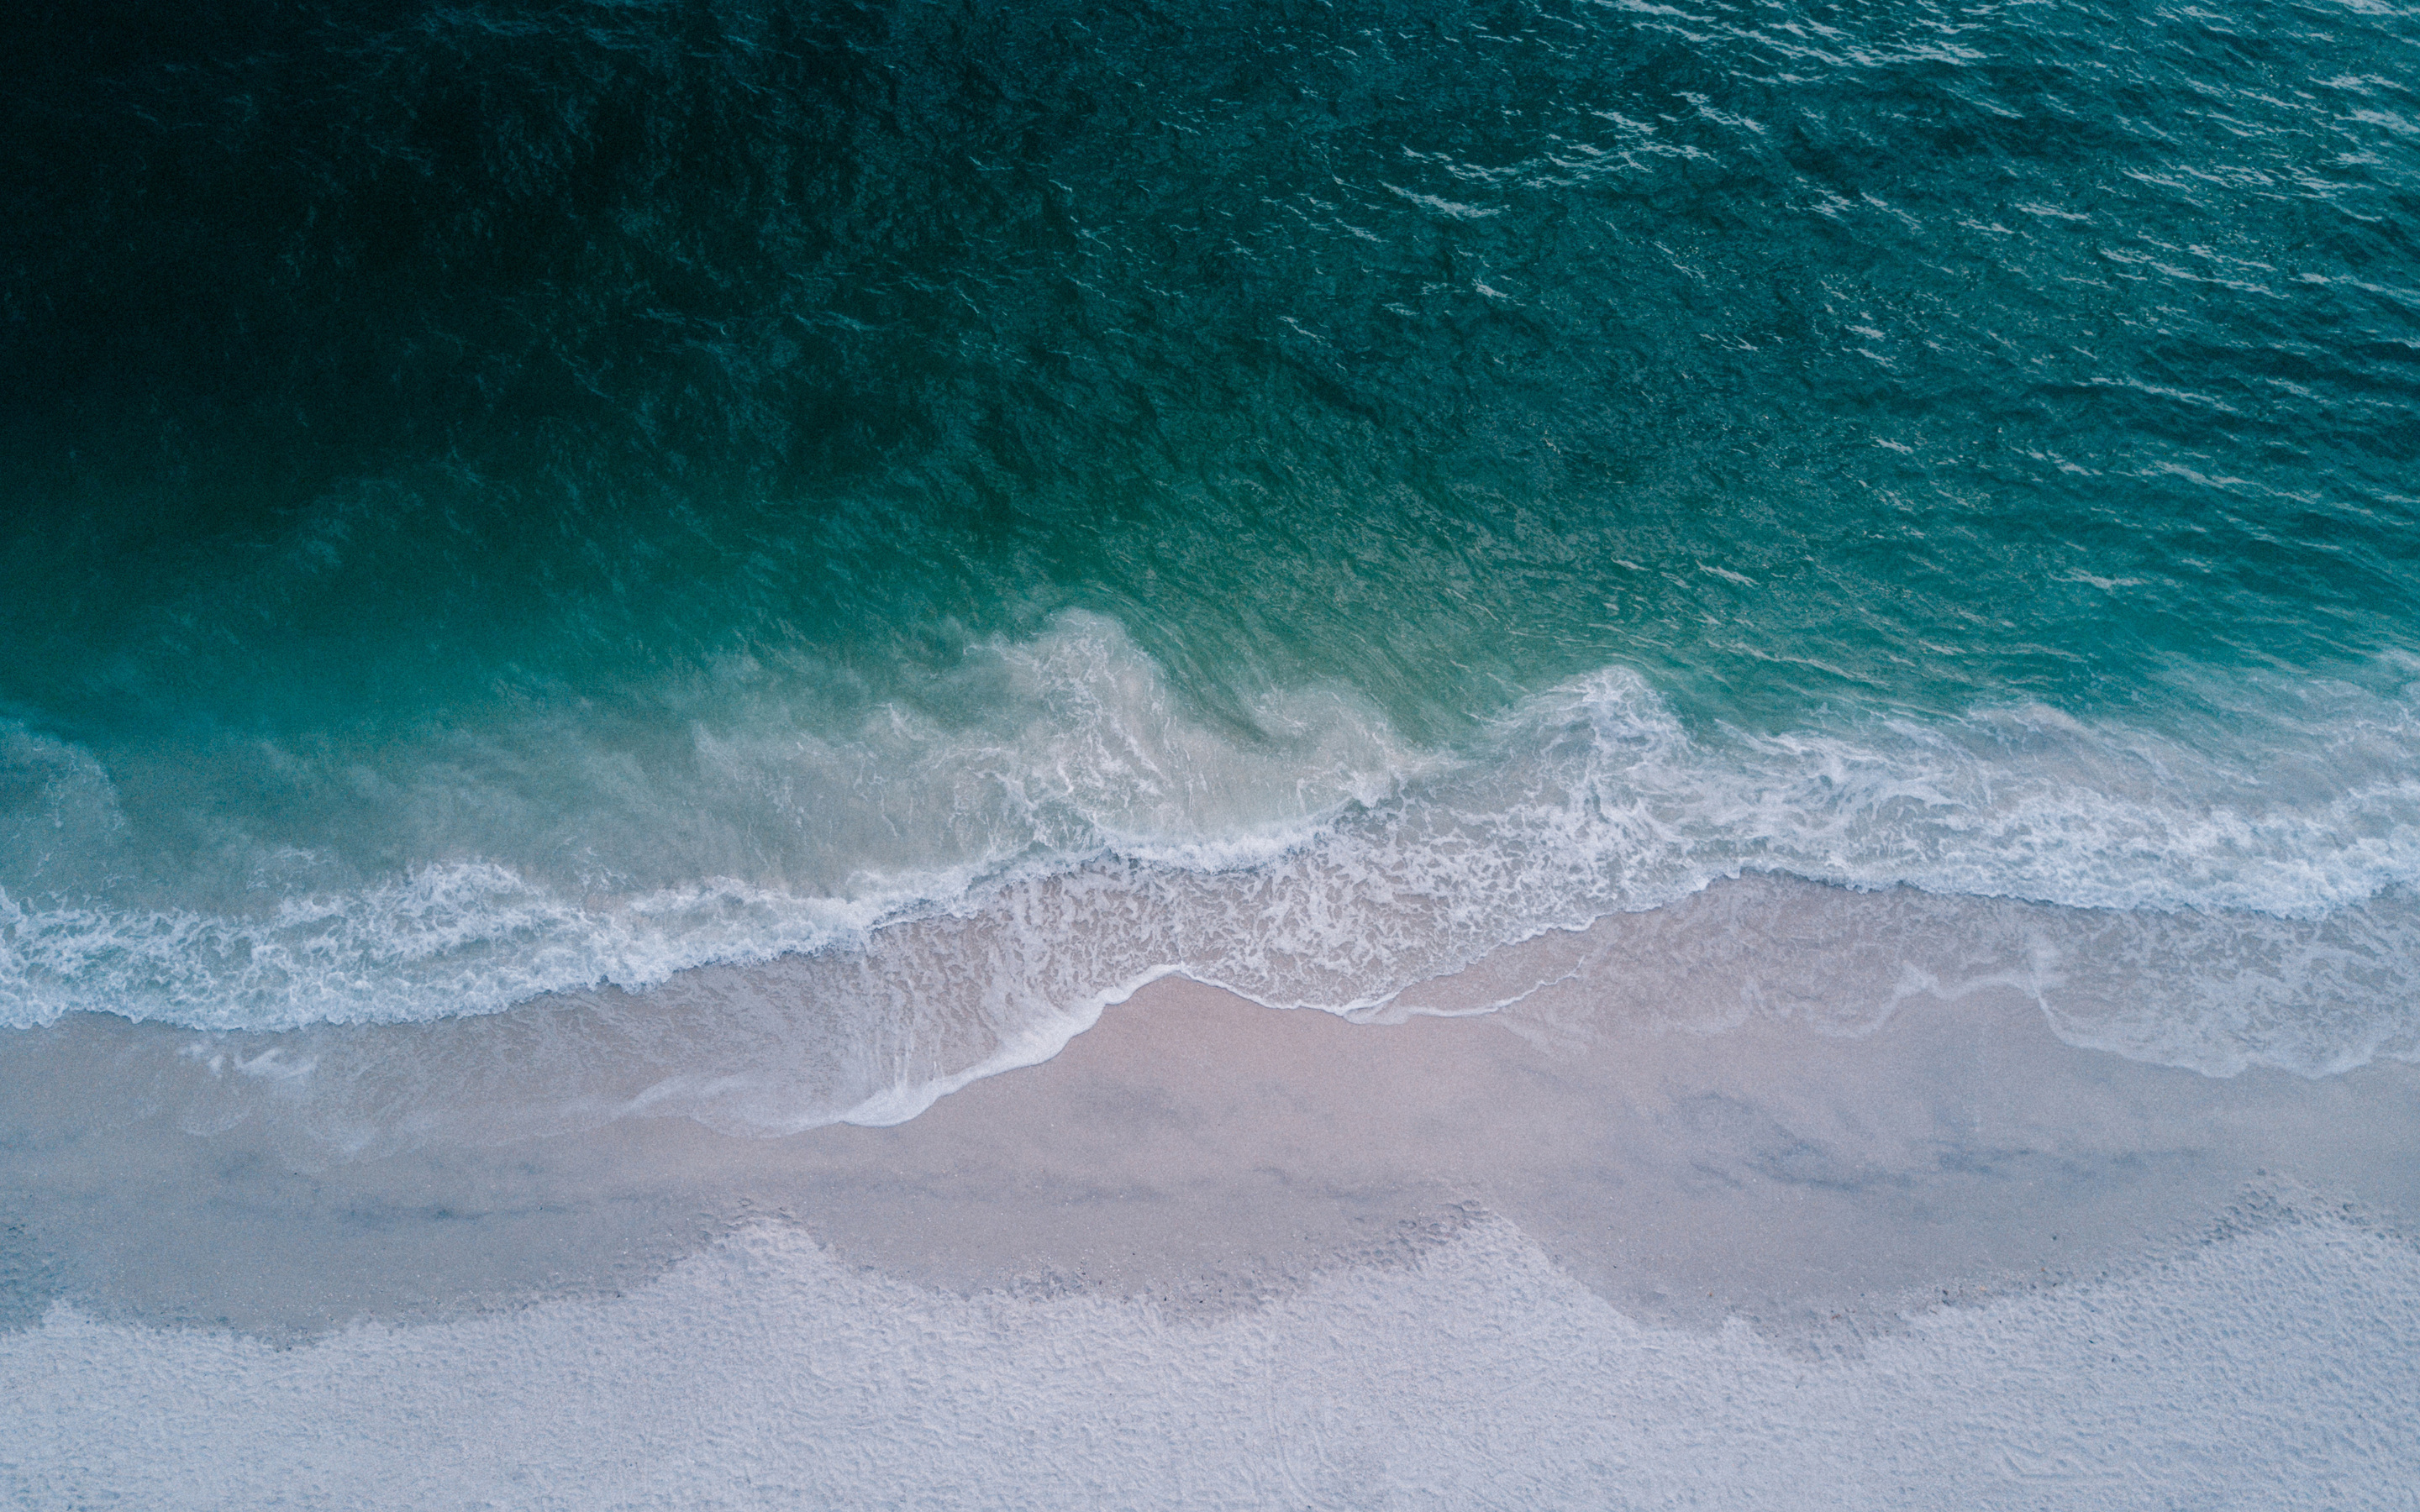 2880x1800 Seashore Top View Beach 4k Macbook Pro Retina HD ...